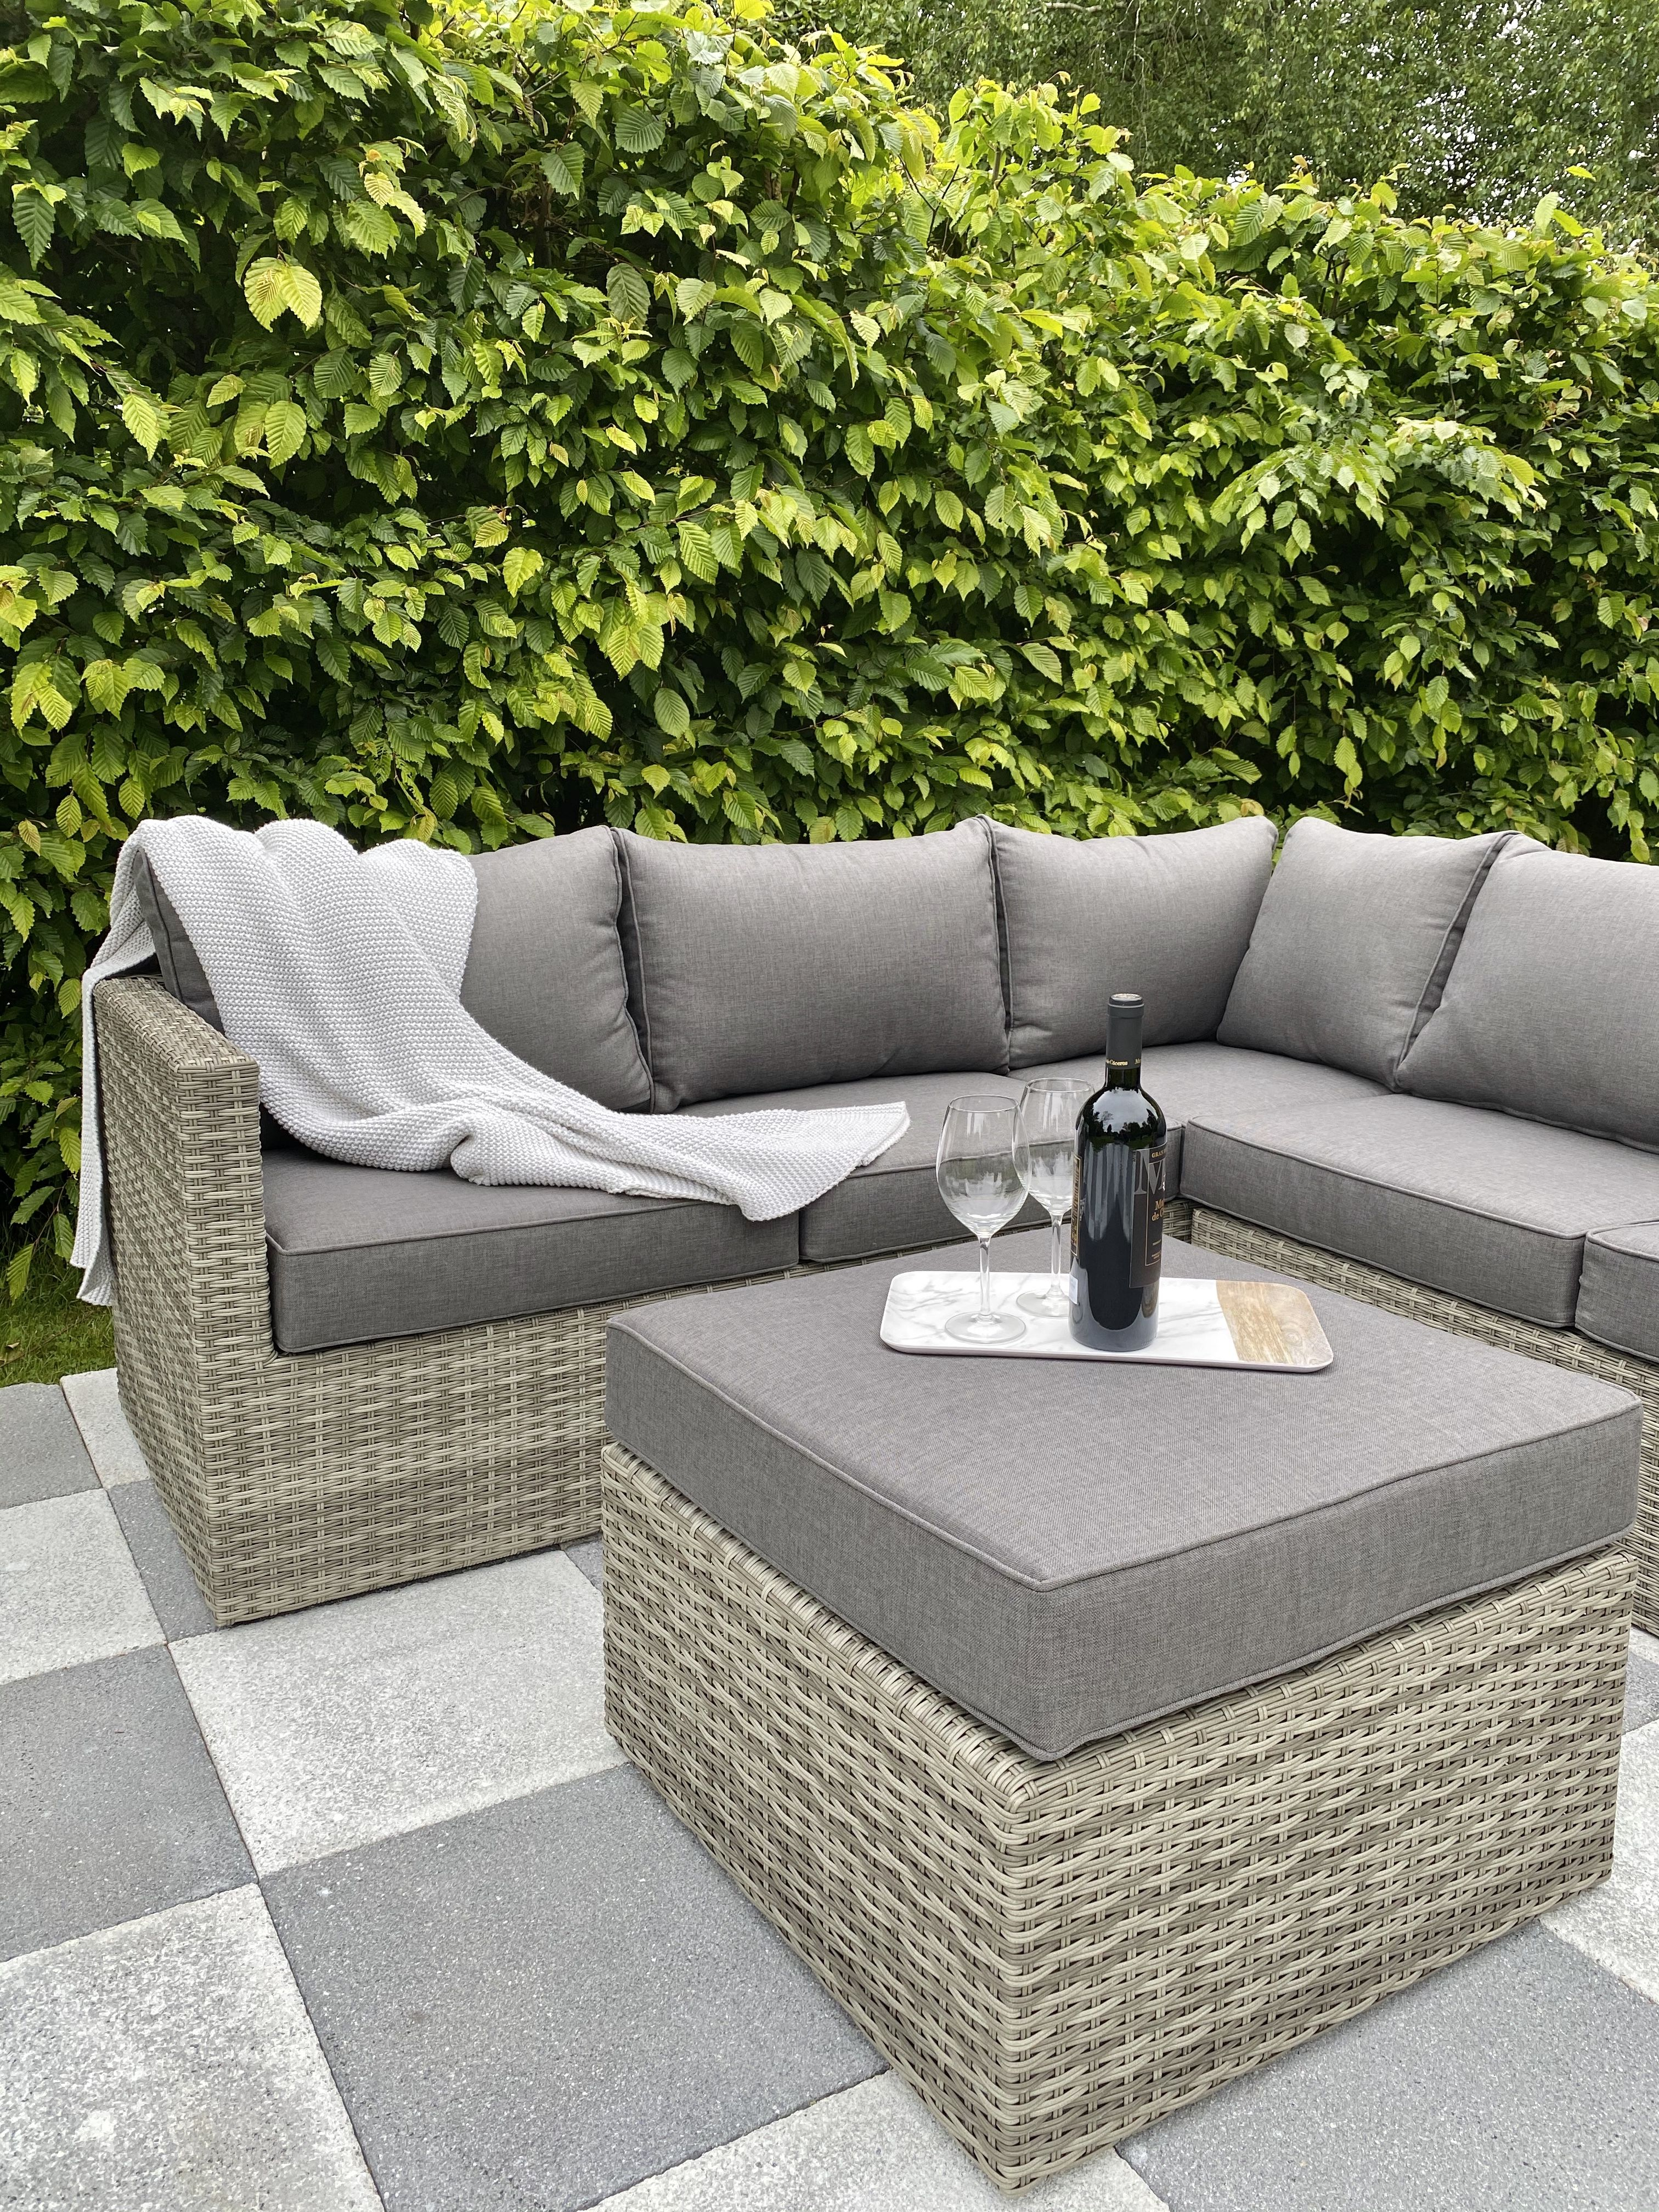 Pin On Stylish Garden Furniture Available From My Shop [ 4032 x 3024 Pixel ]